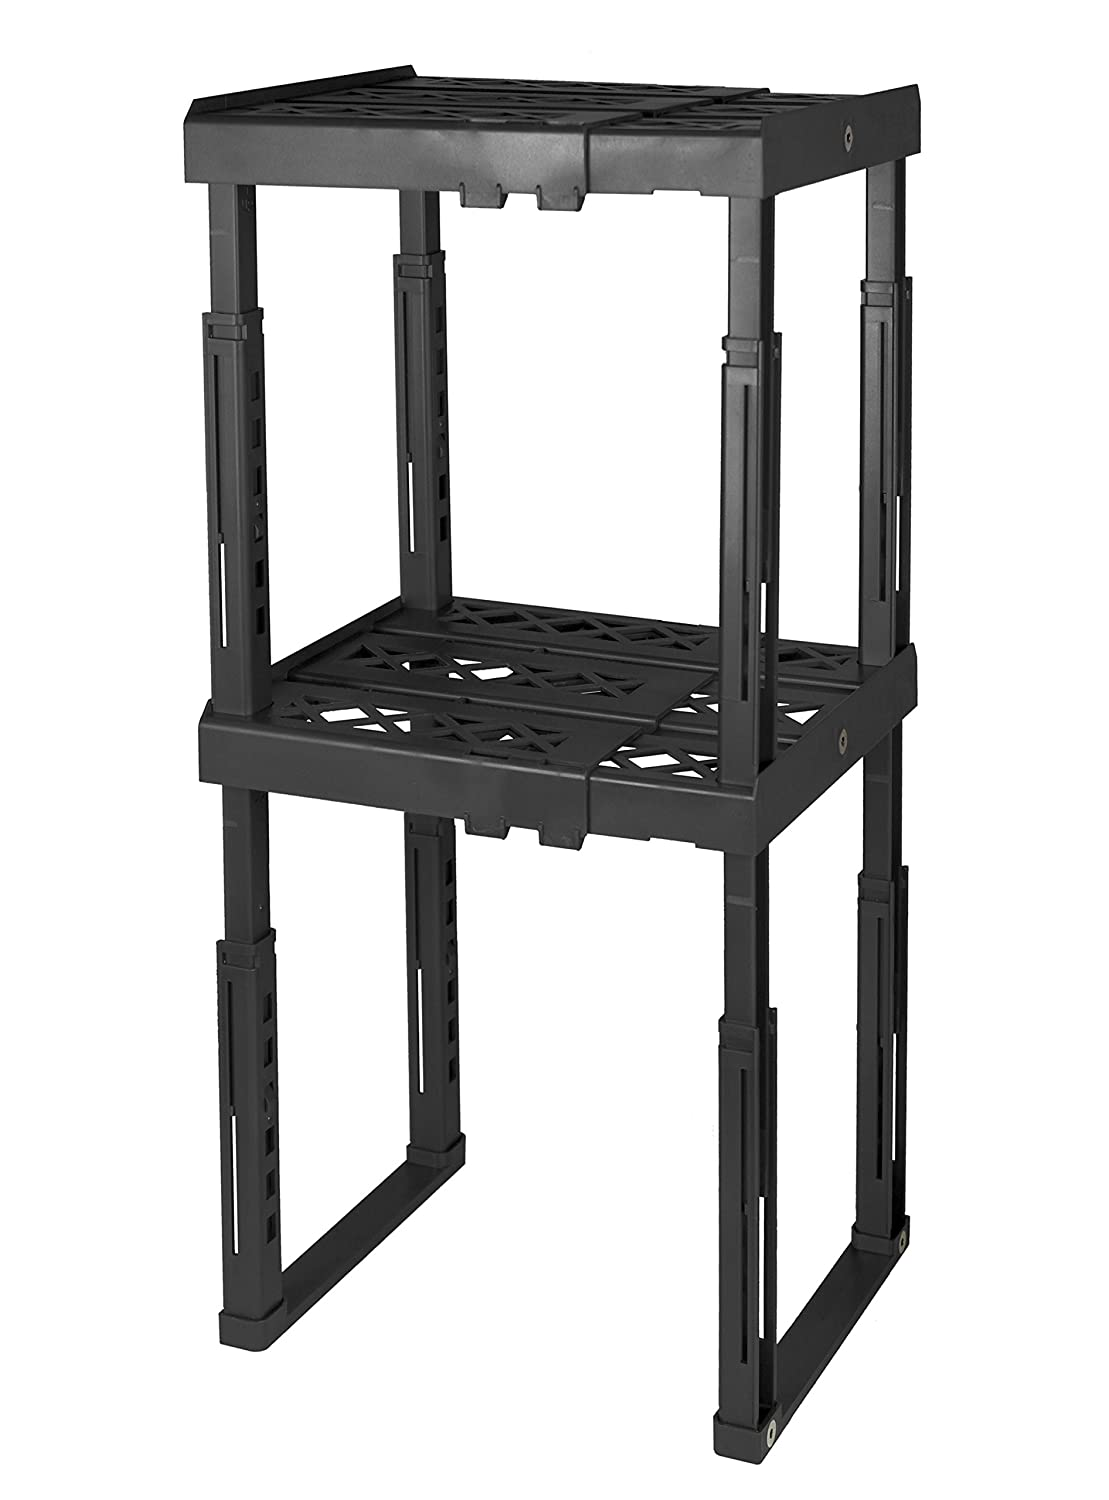 "Tools for School Locker Shelf. Adjustable Width 8"" - 12 1/2"" and Height 9 3/4"" - 14"". Stackable and Heavy Duty. Ideal for School, Work and Gym Lockers (Black, Double)"